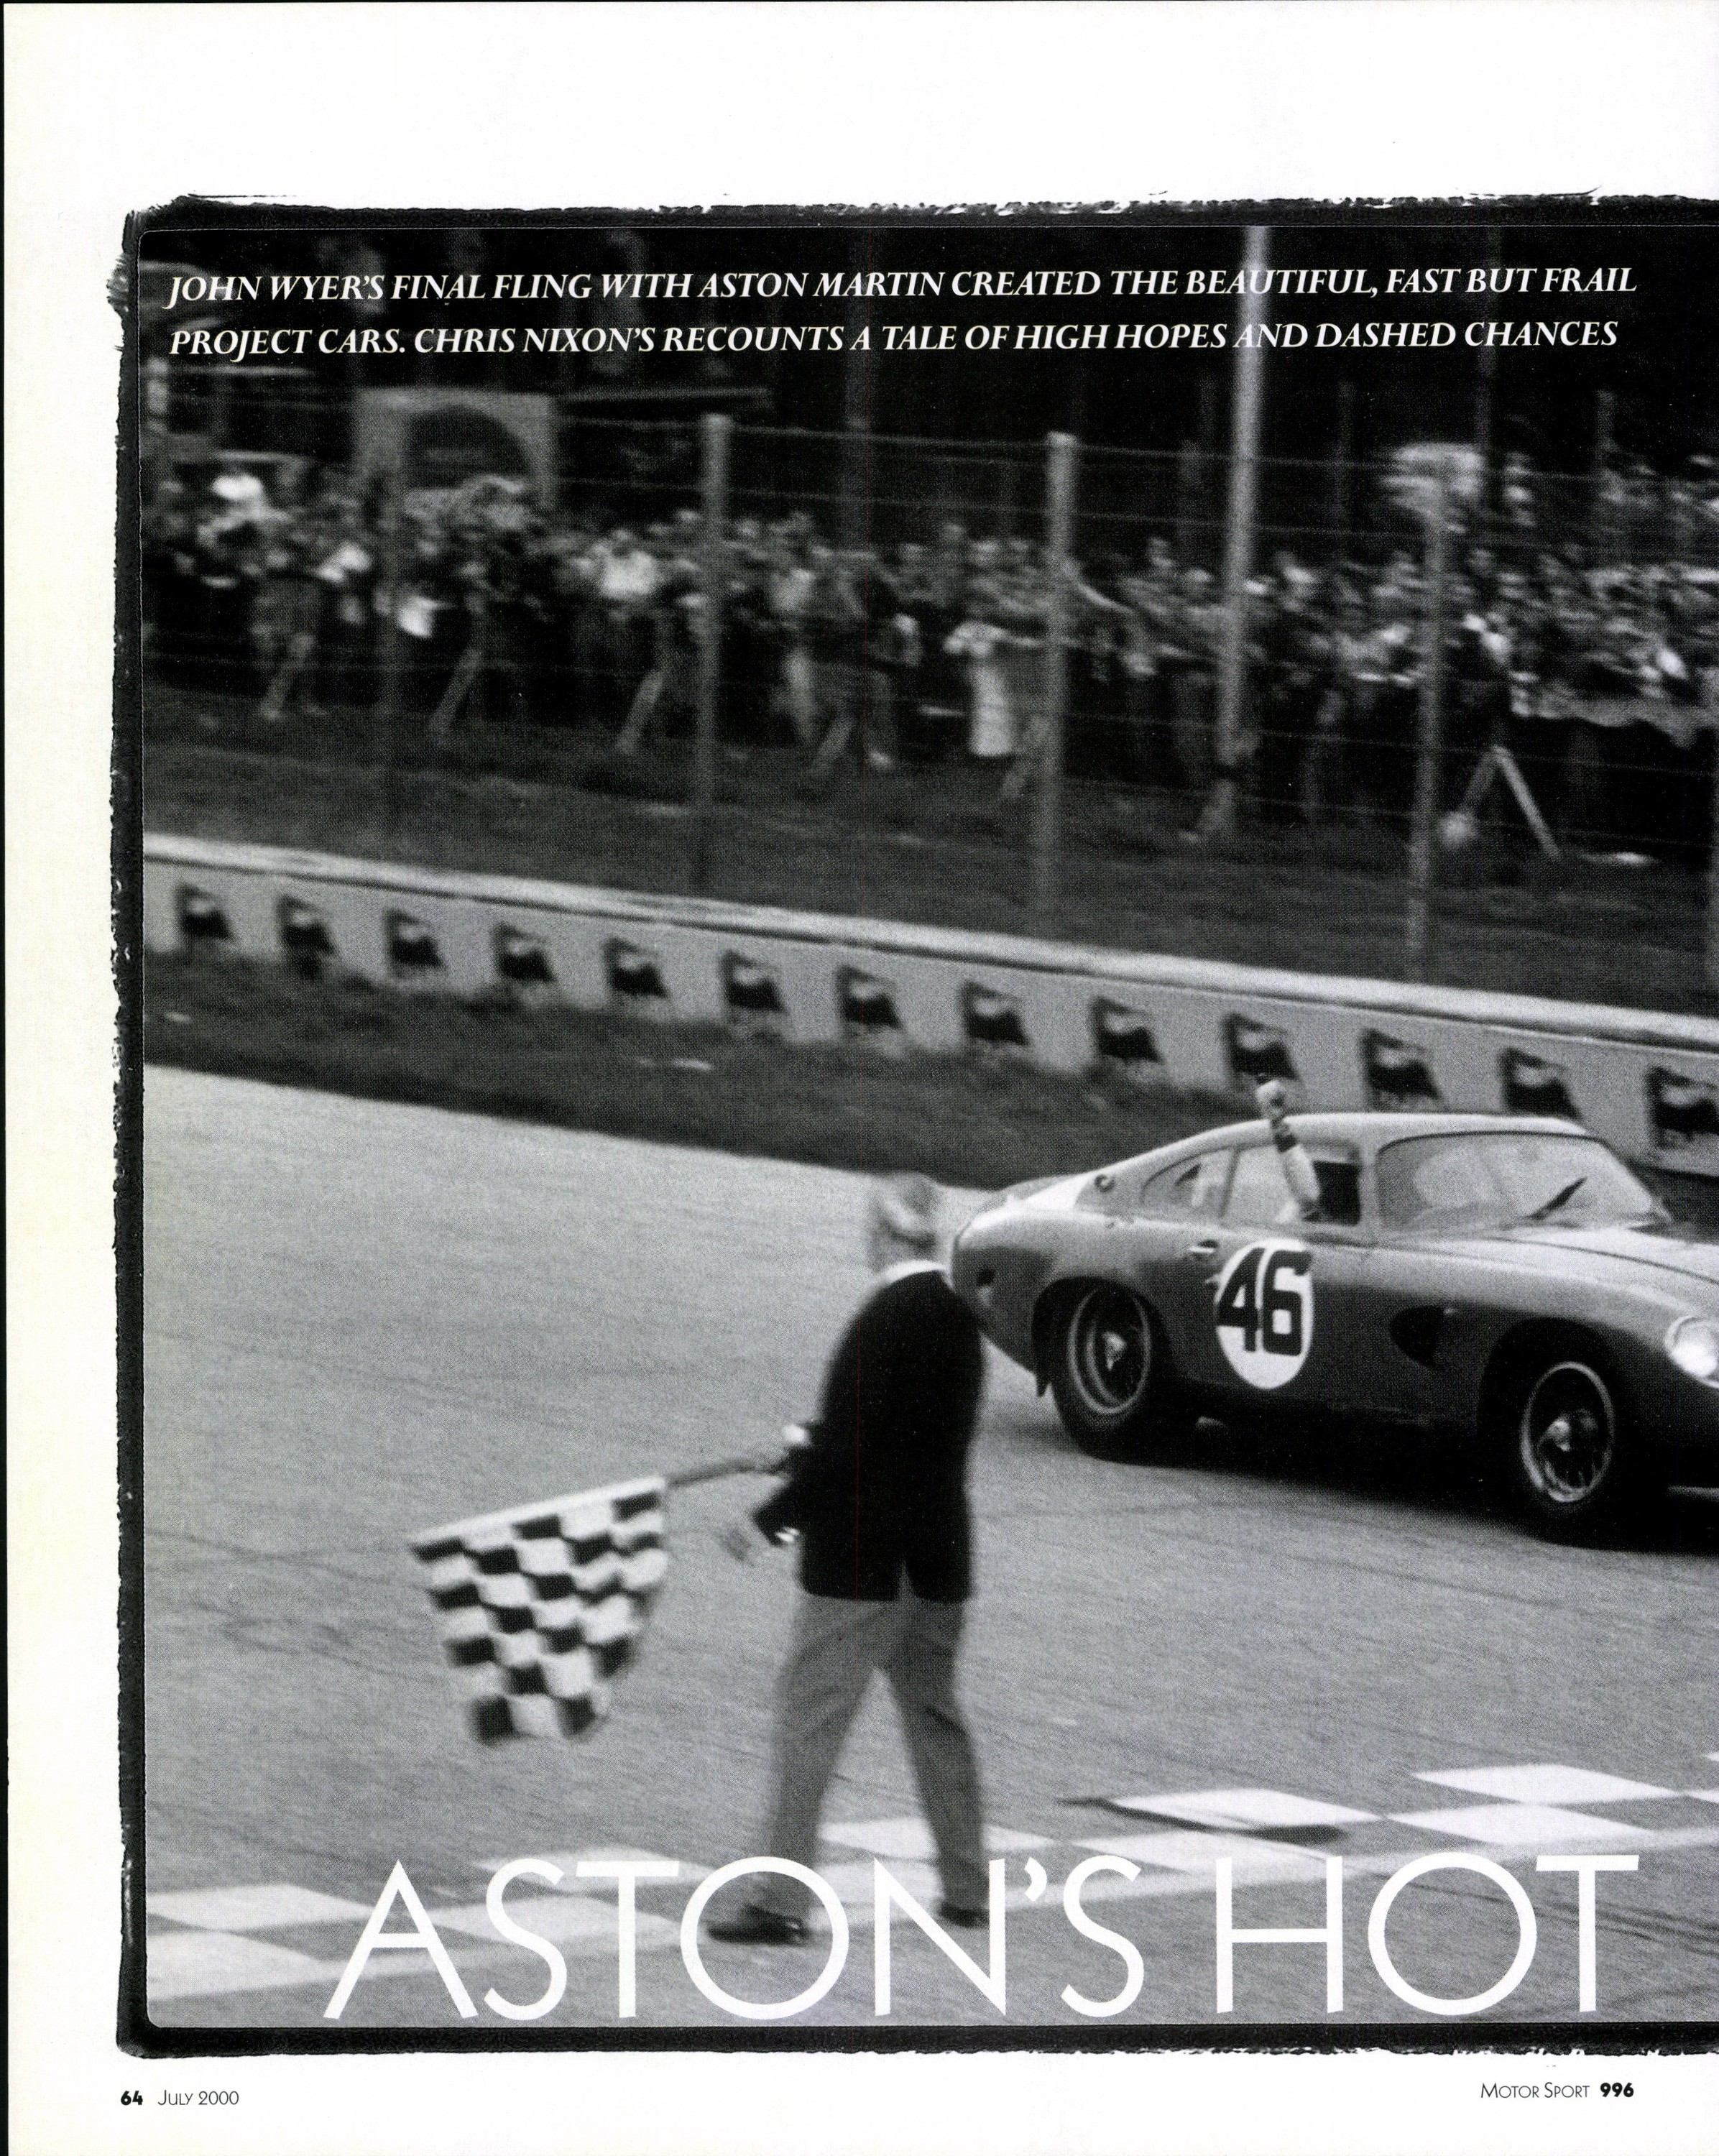 john wyers final with aston martin created the bea image